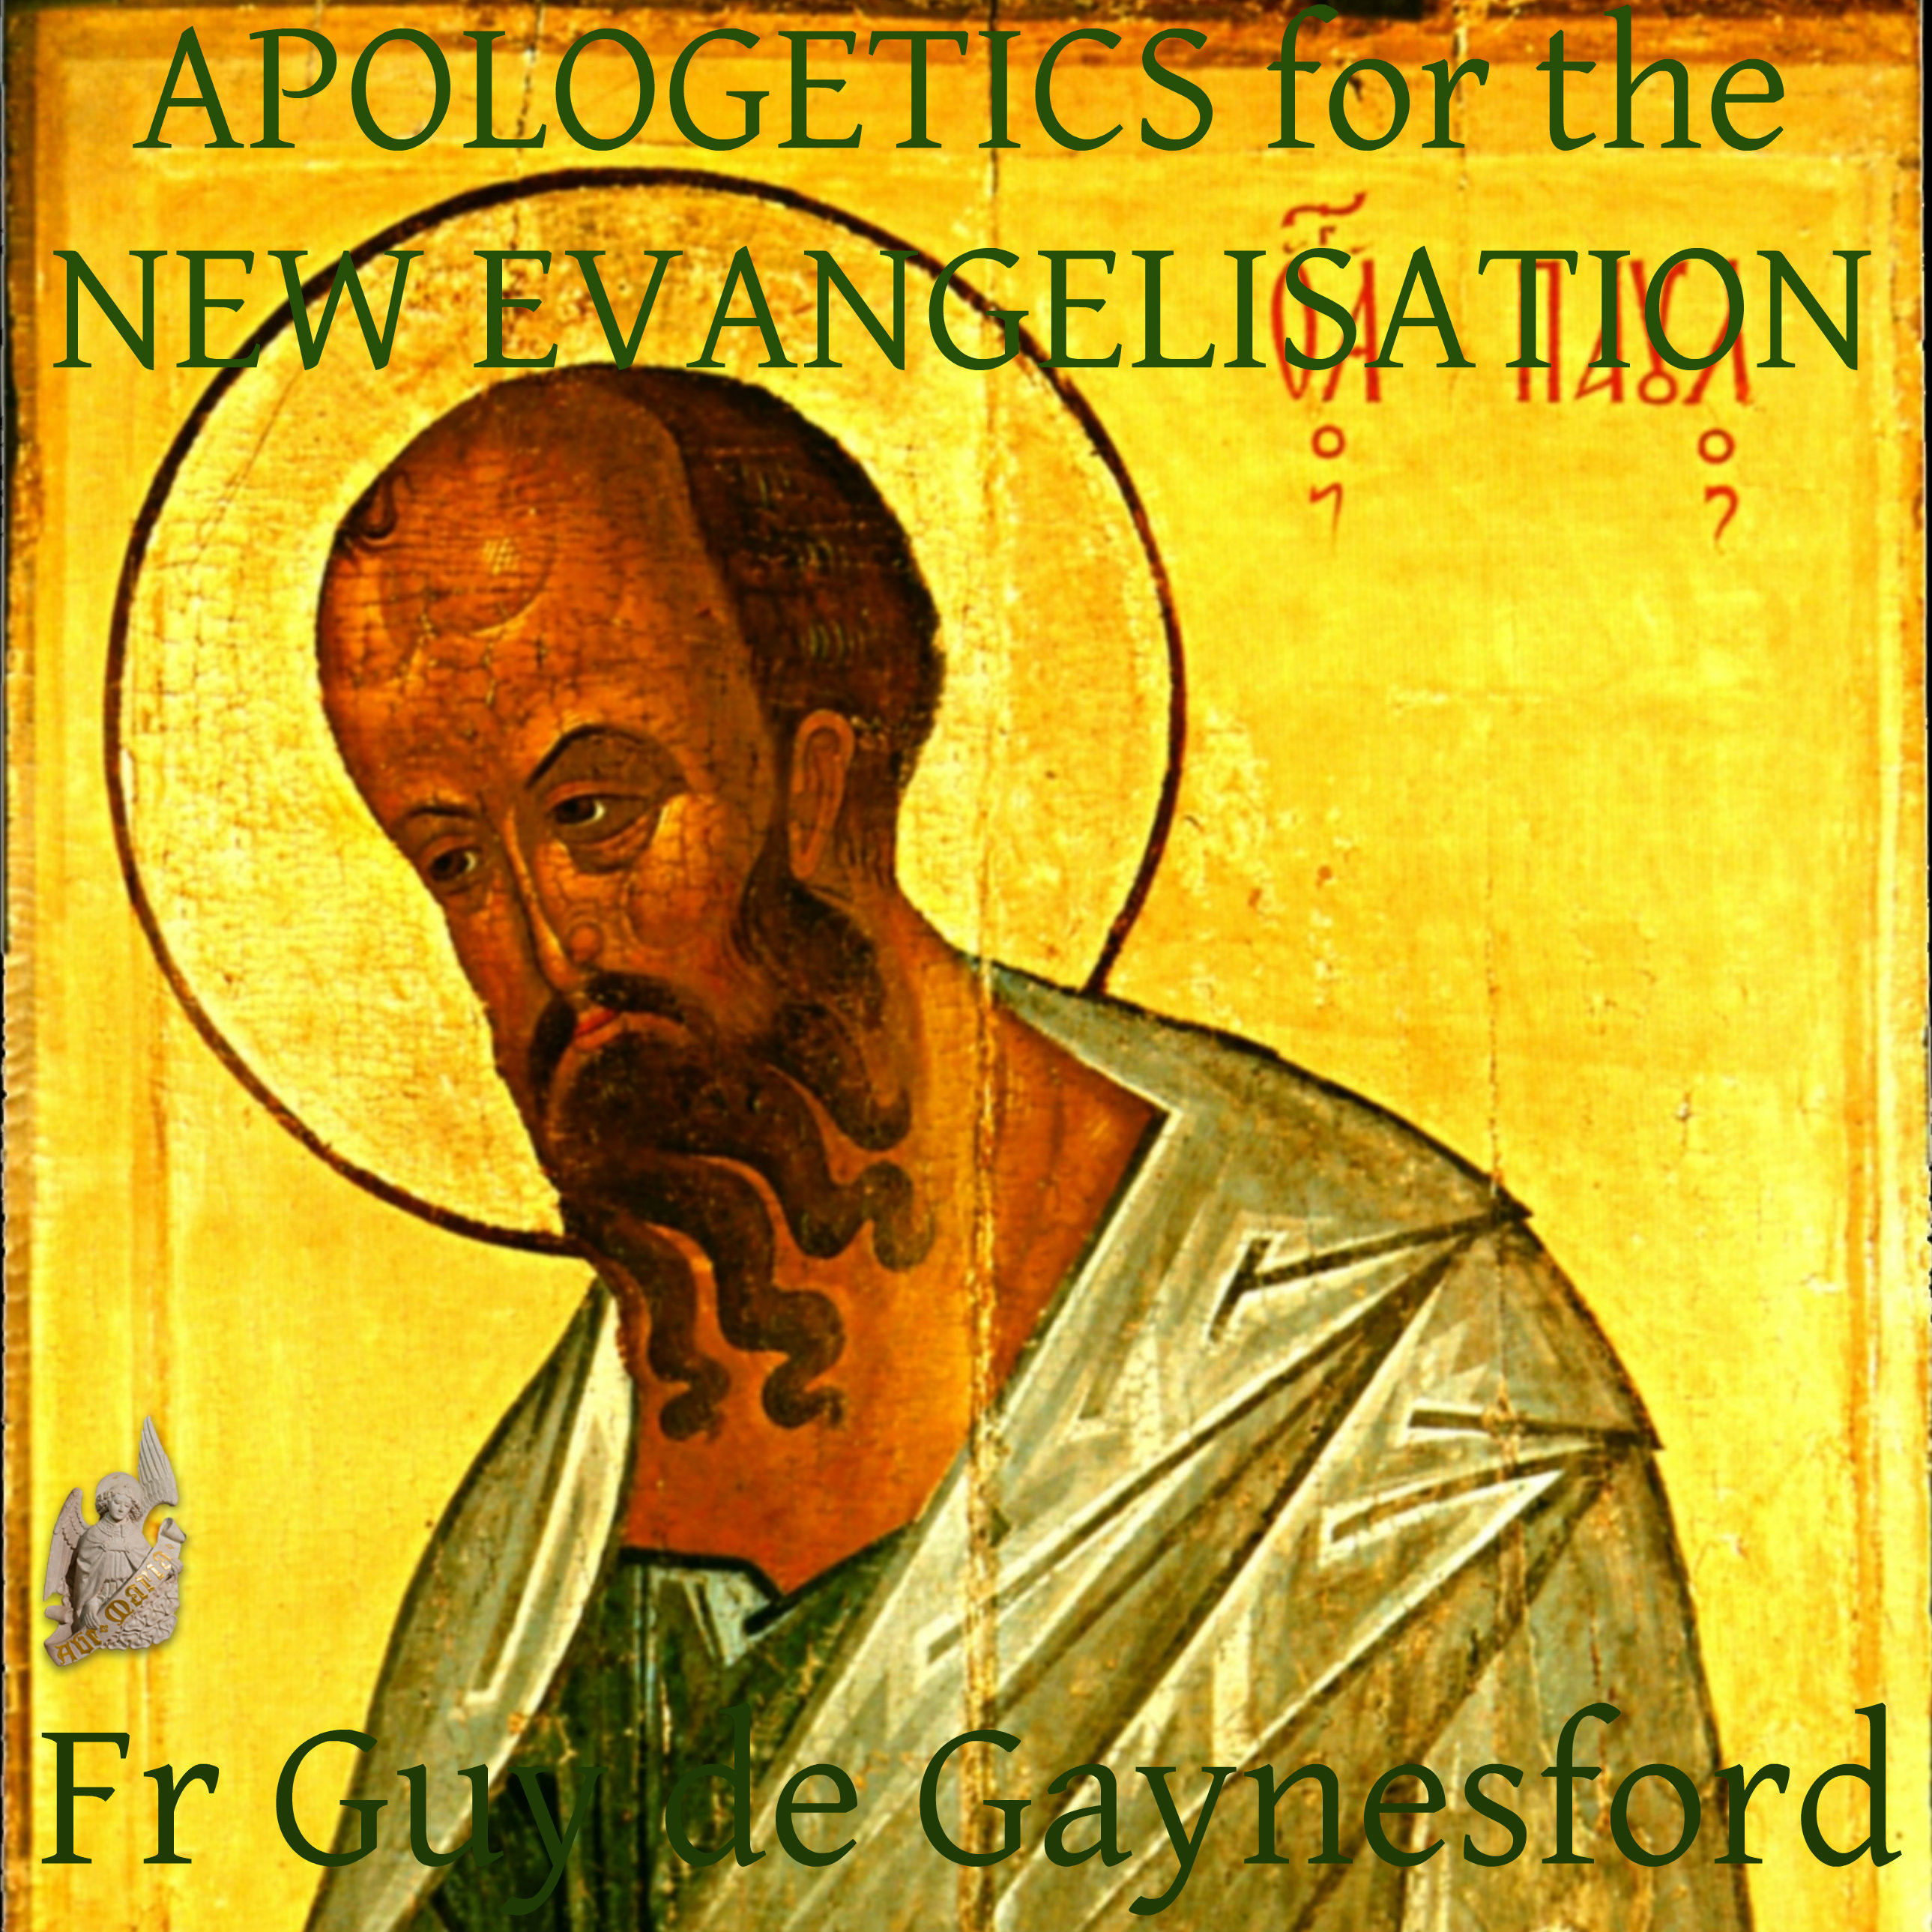 Apologetics for the New Evangelisation – ST PAUL REPOSITORY